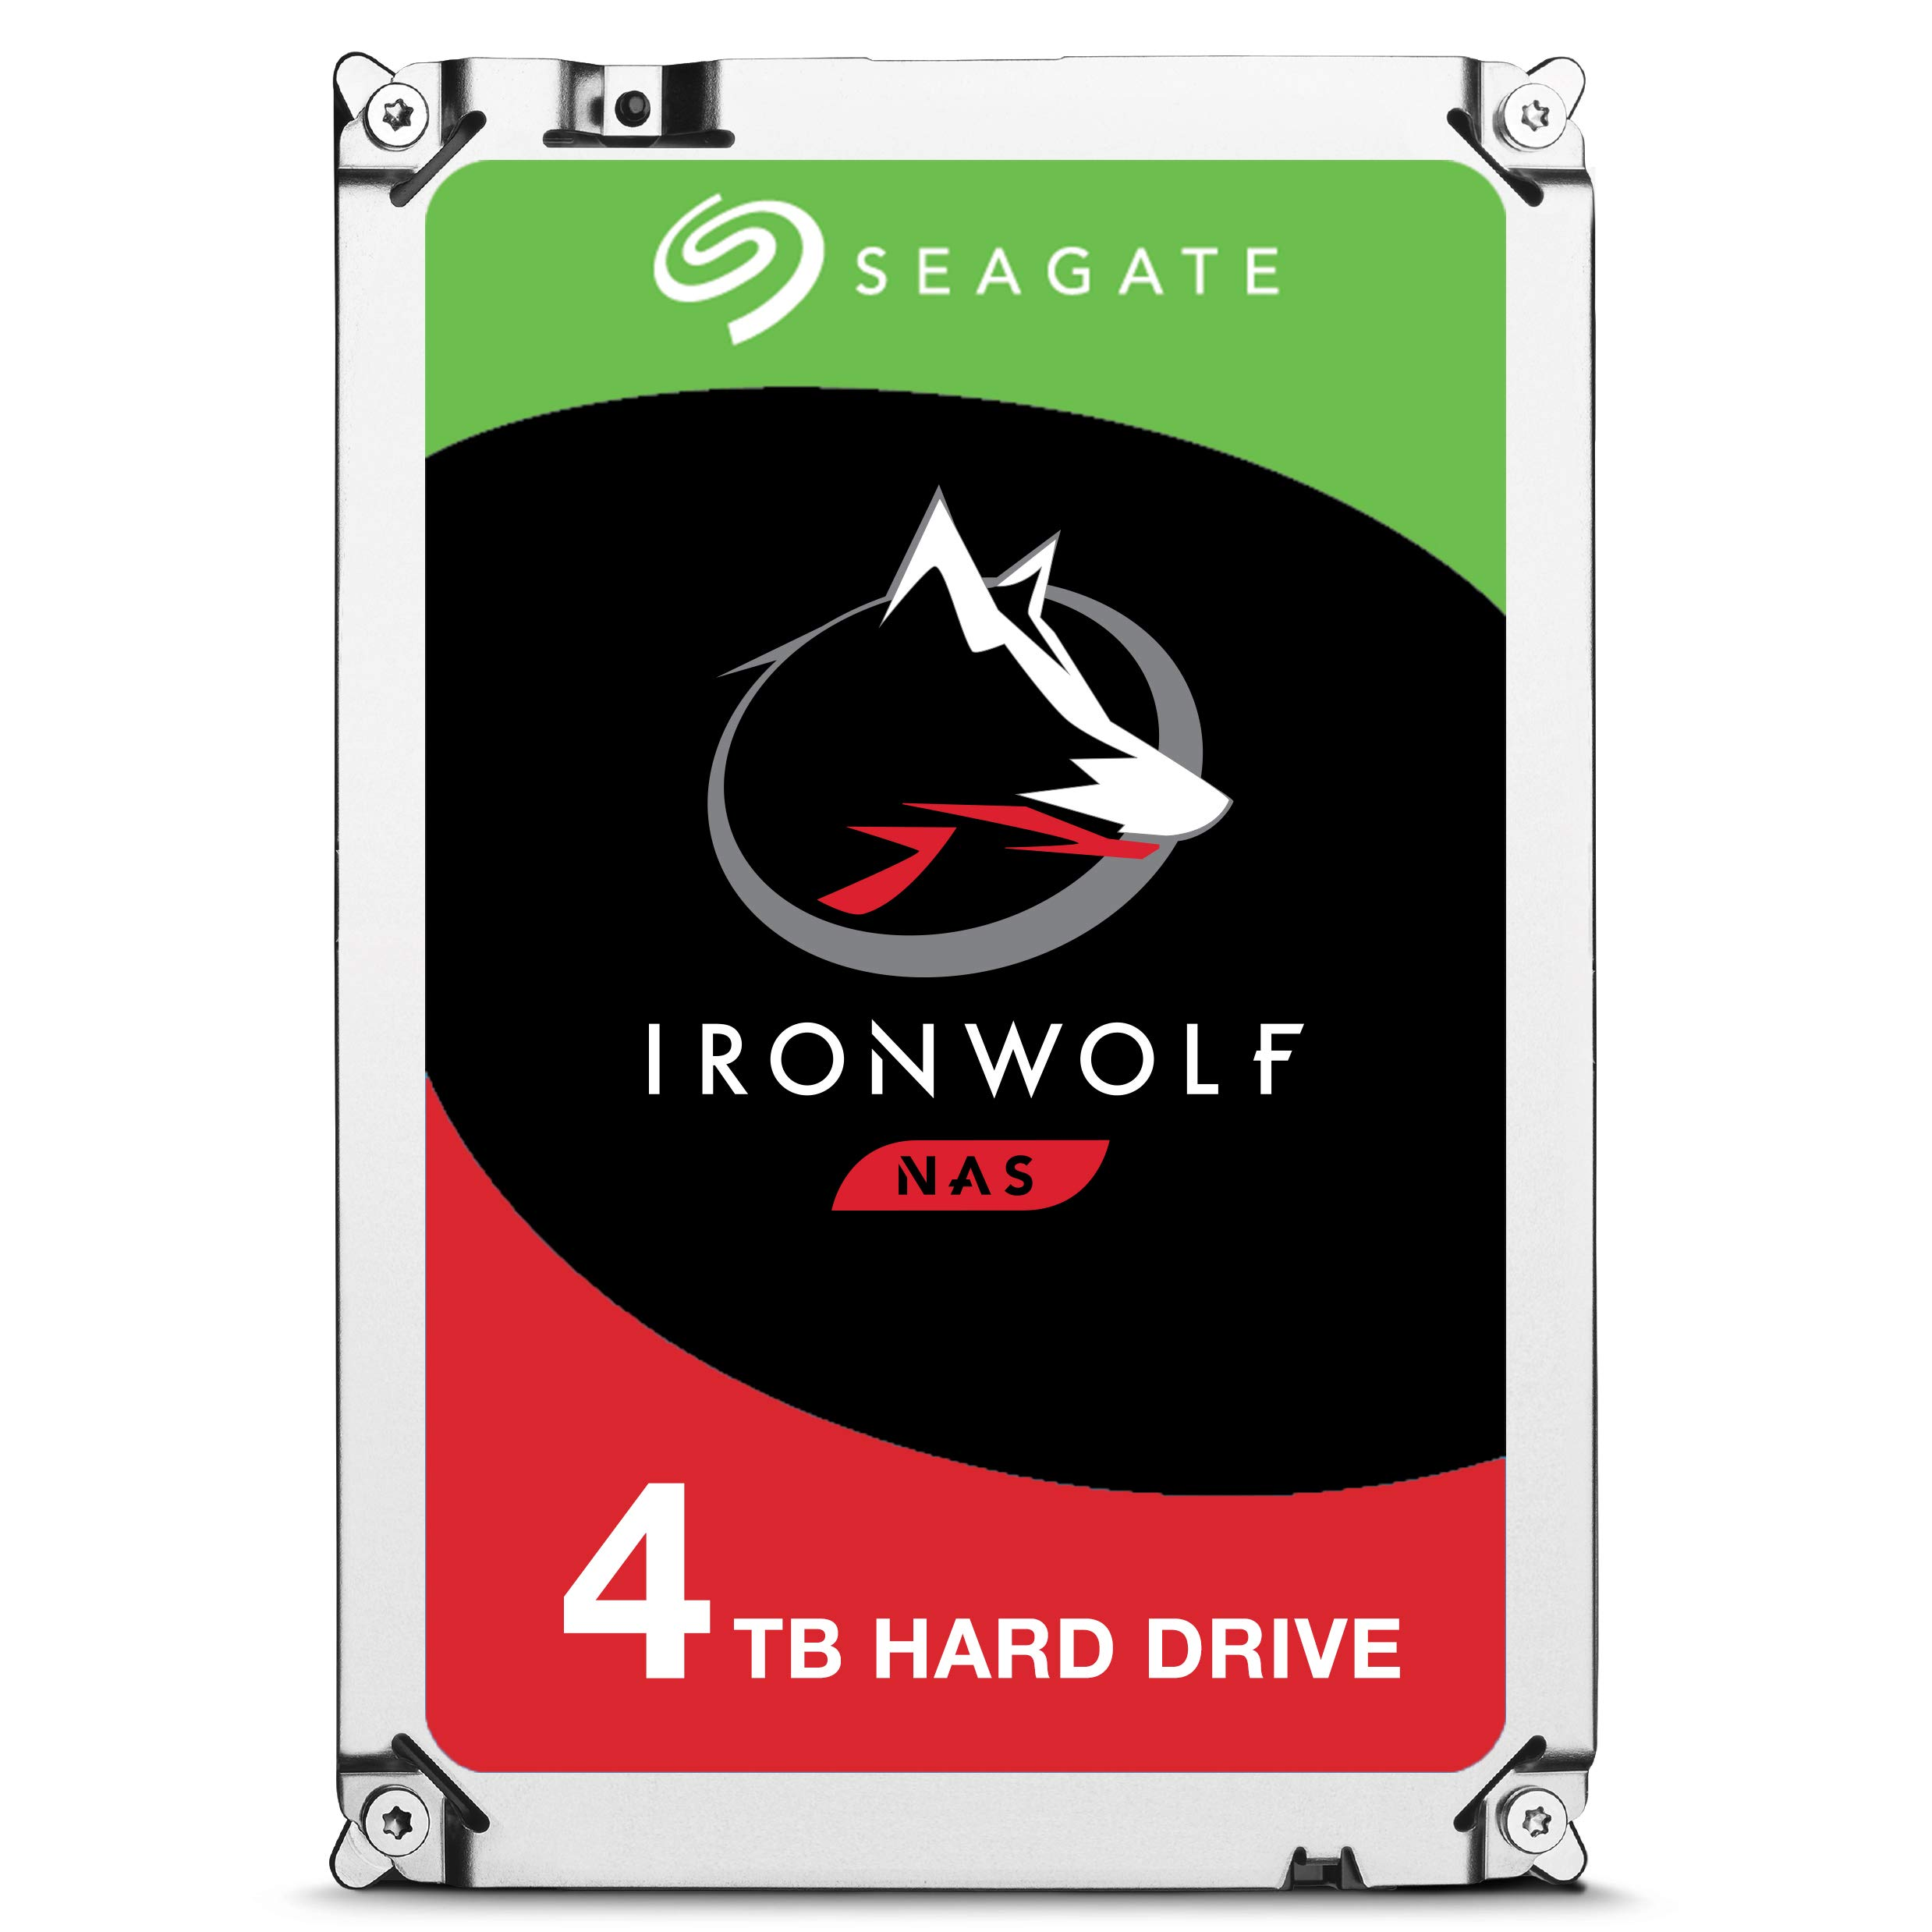 Seagate IronWolf 4TB NAS Internal Hard Drive HDD - 3.5 Inch SATA 6Gb/s 5900 RPM 64MB Cache for RAID Network Attached Storage (ST4000VN008)